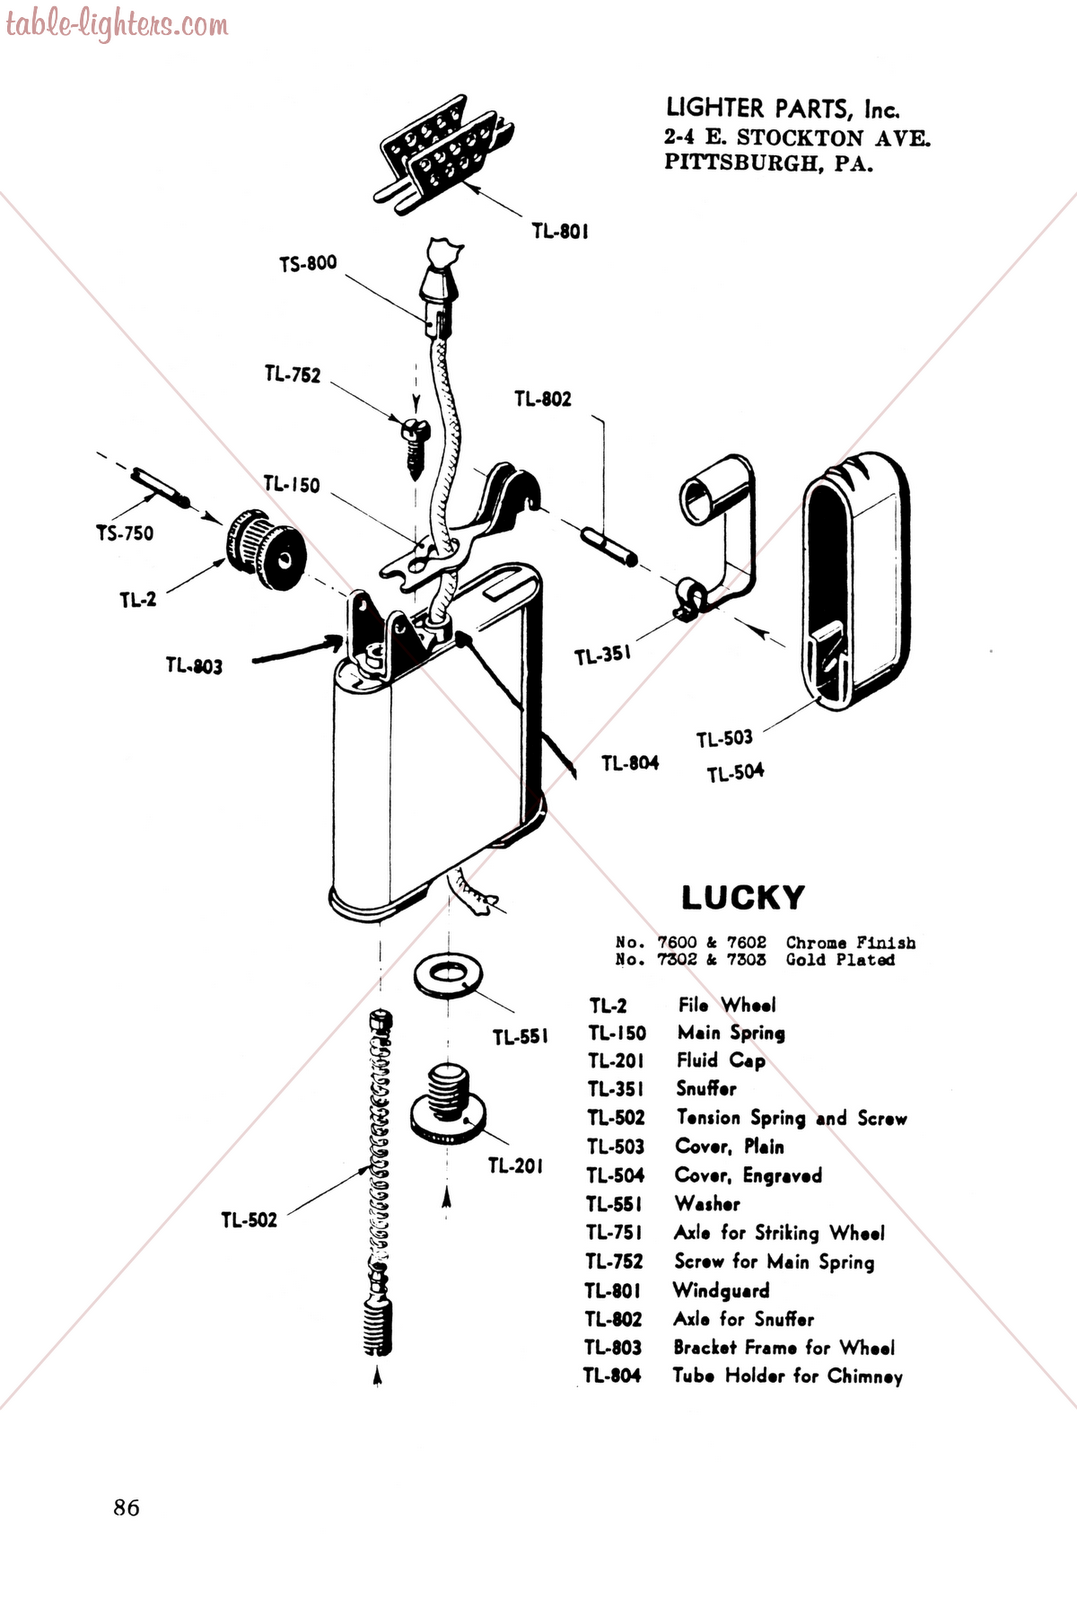 Table Lighters Collectors Guide Lighter Repair Manual For All Cigarette Lighters